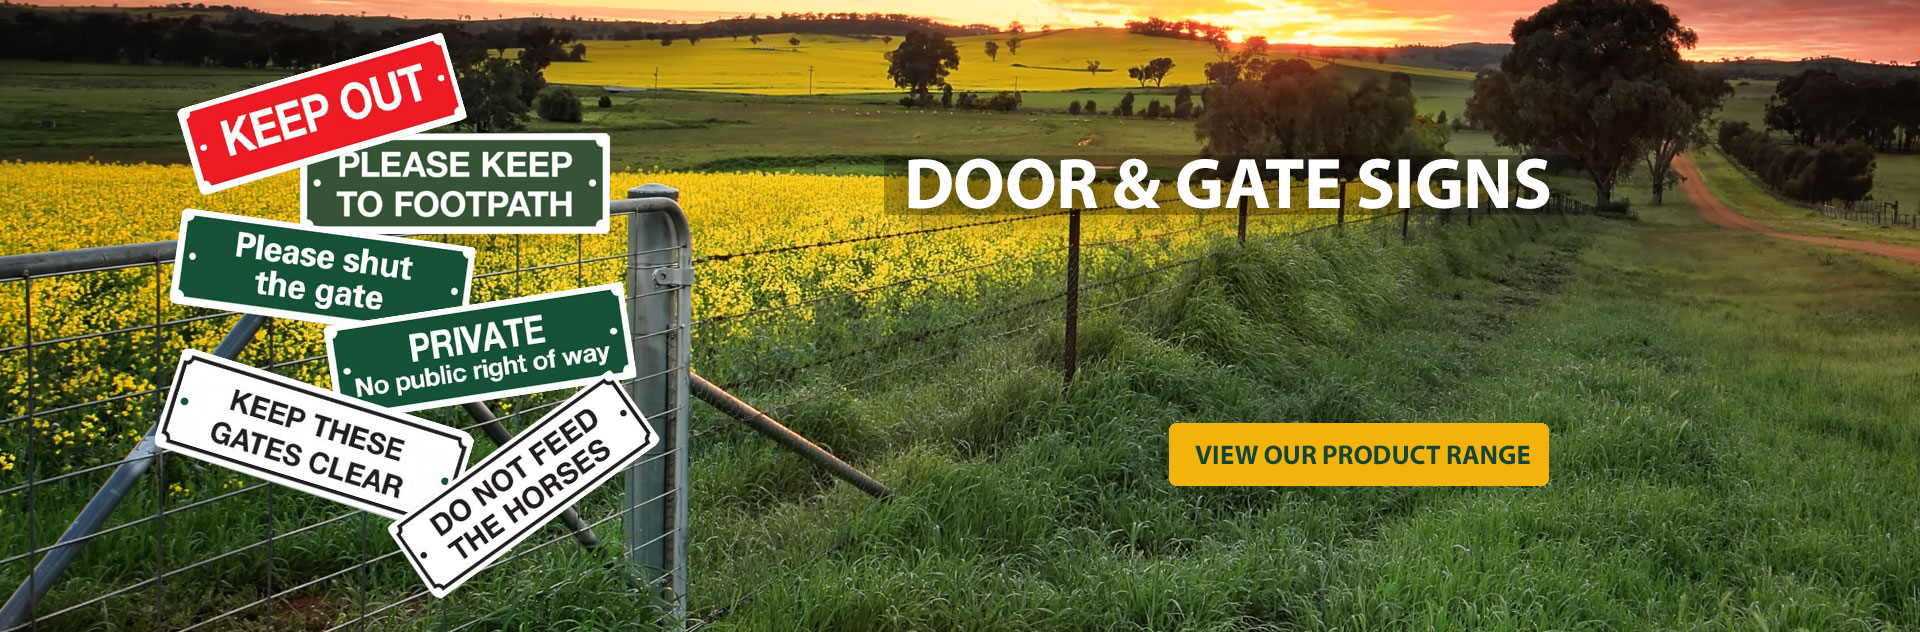 Door & Gate Signs